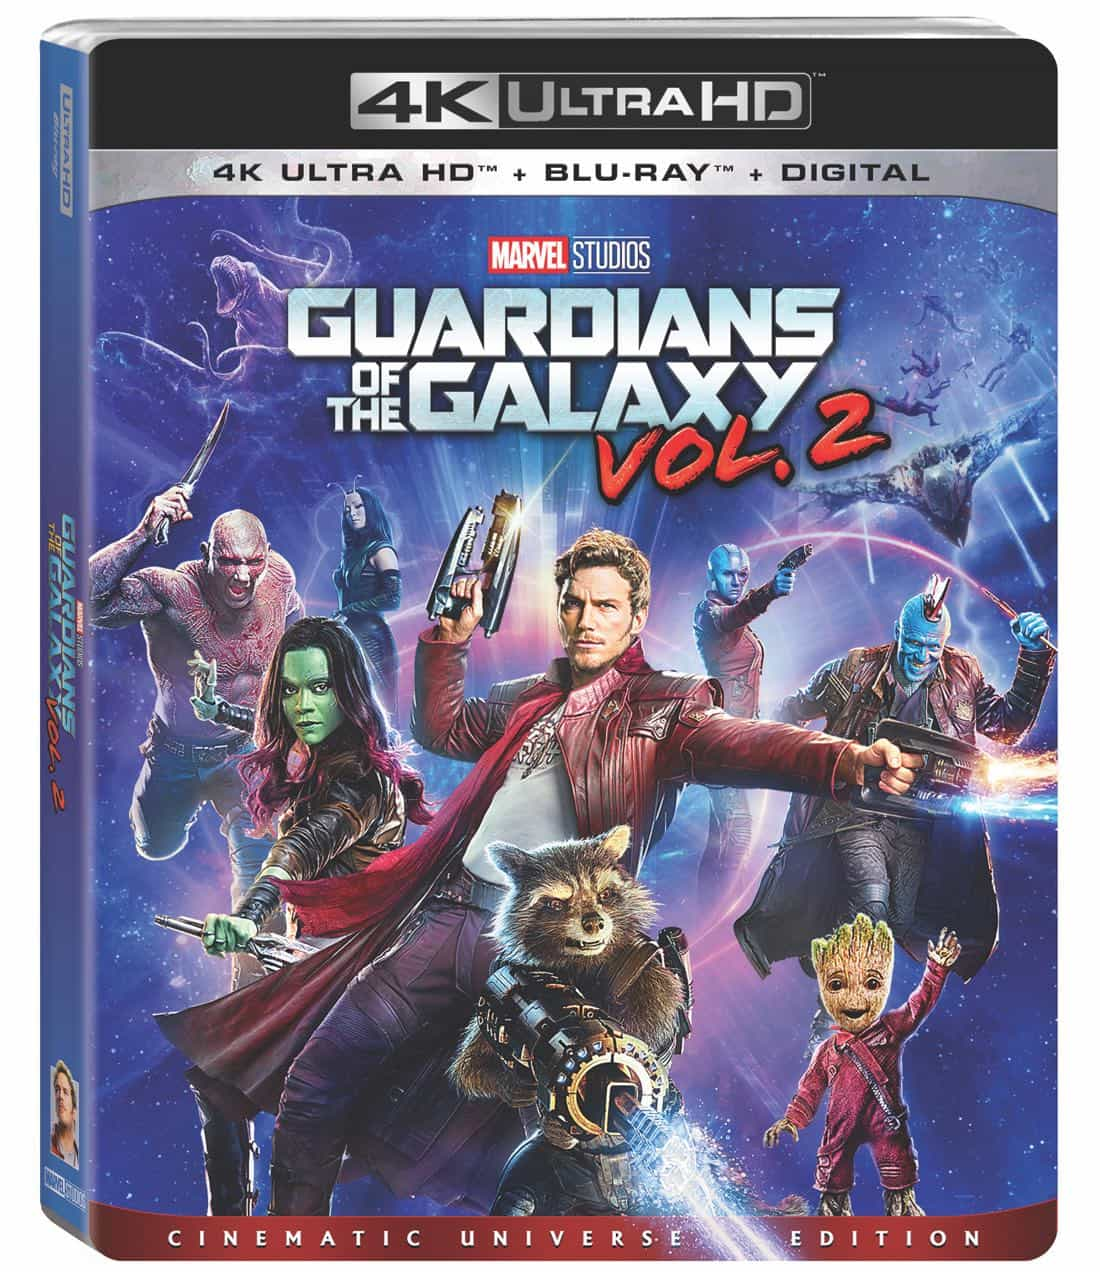 Guardians-of-the-Galaxy-Vol-2-Bluray-4K-Cover